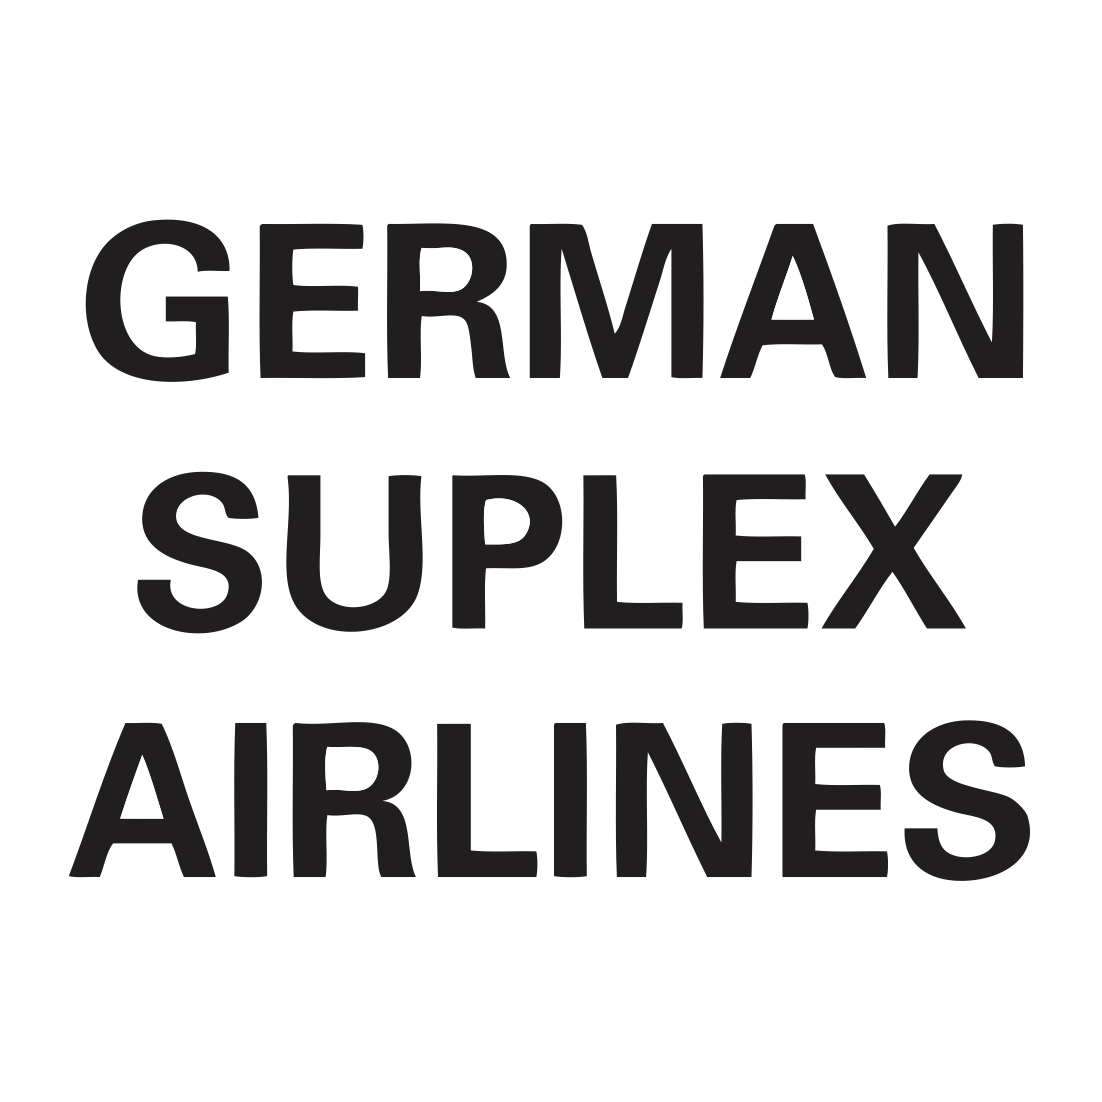 German Suplex Airlines